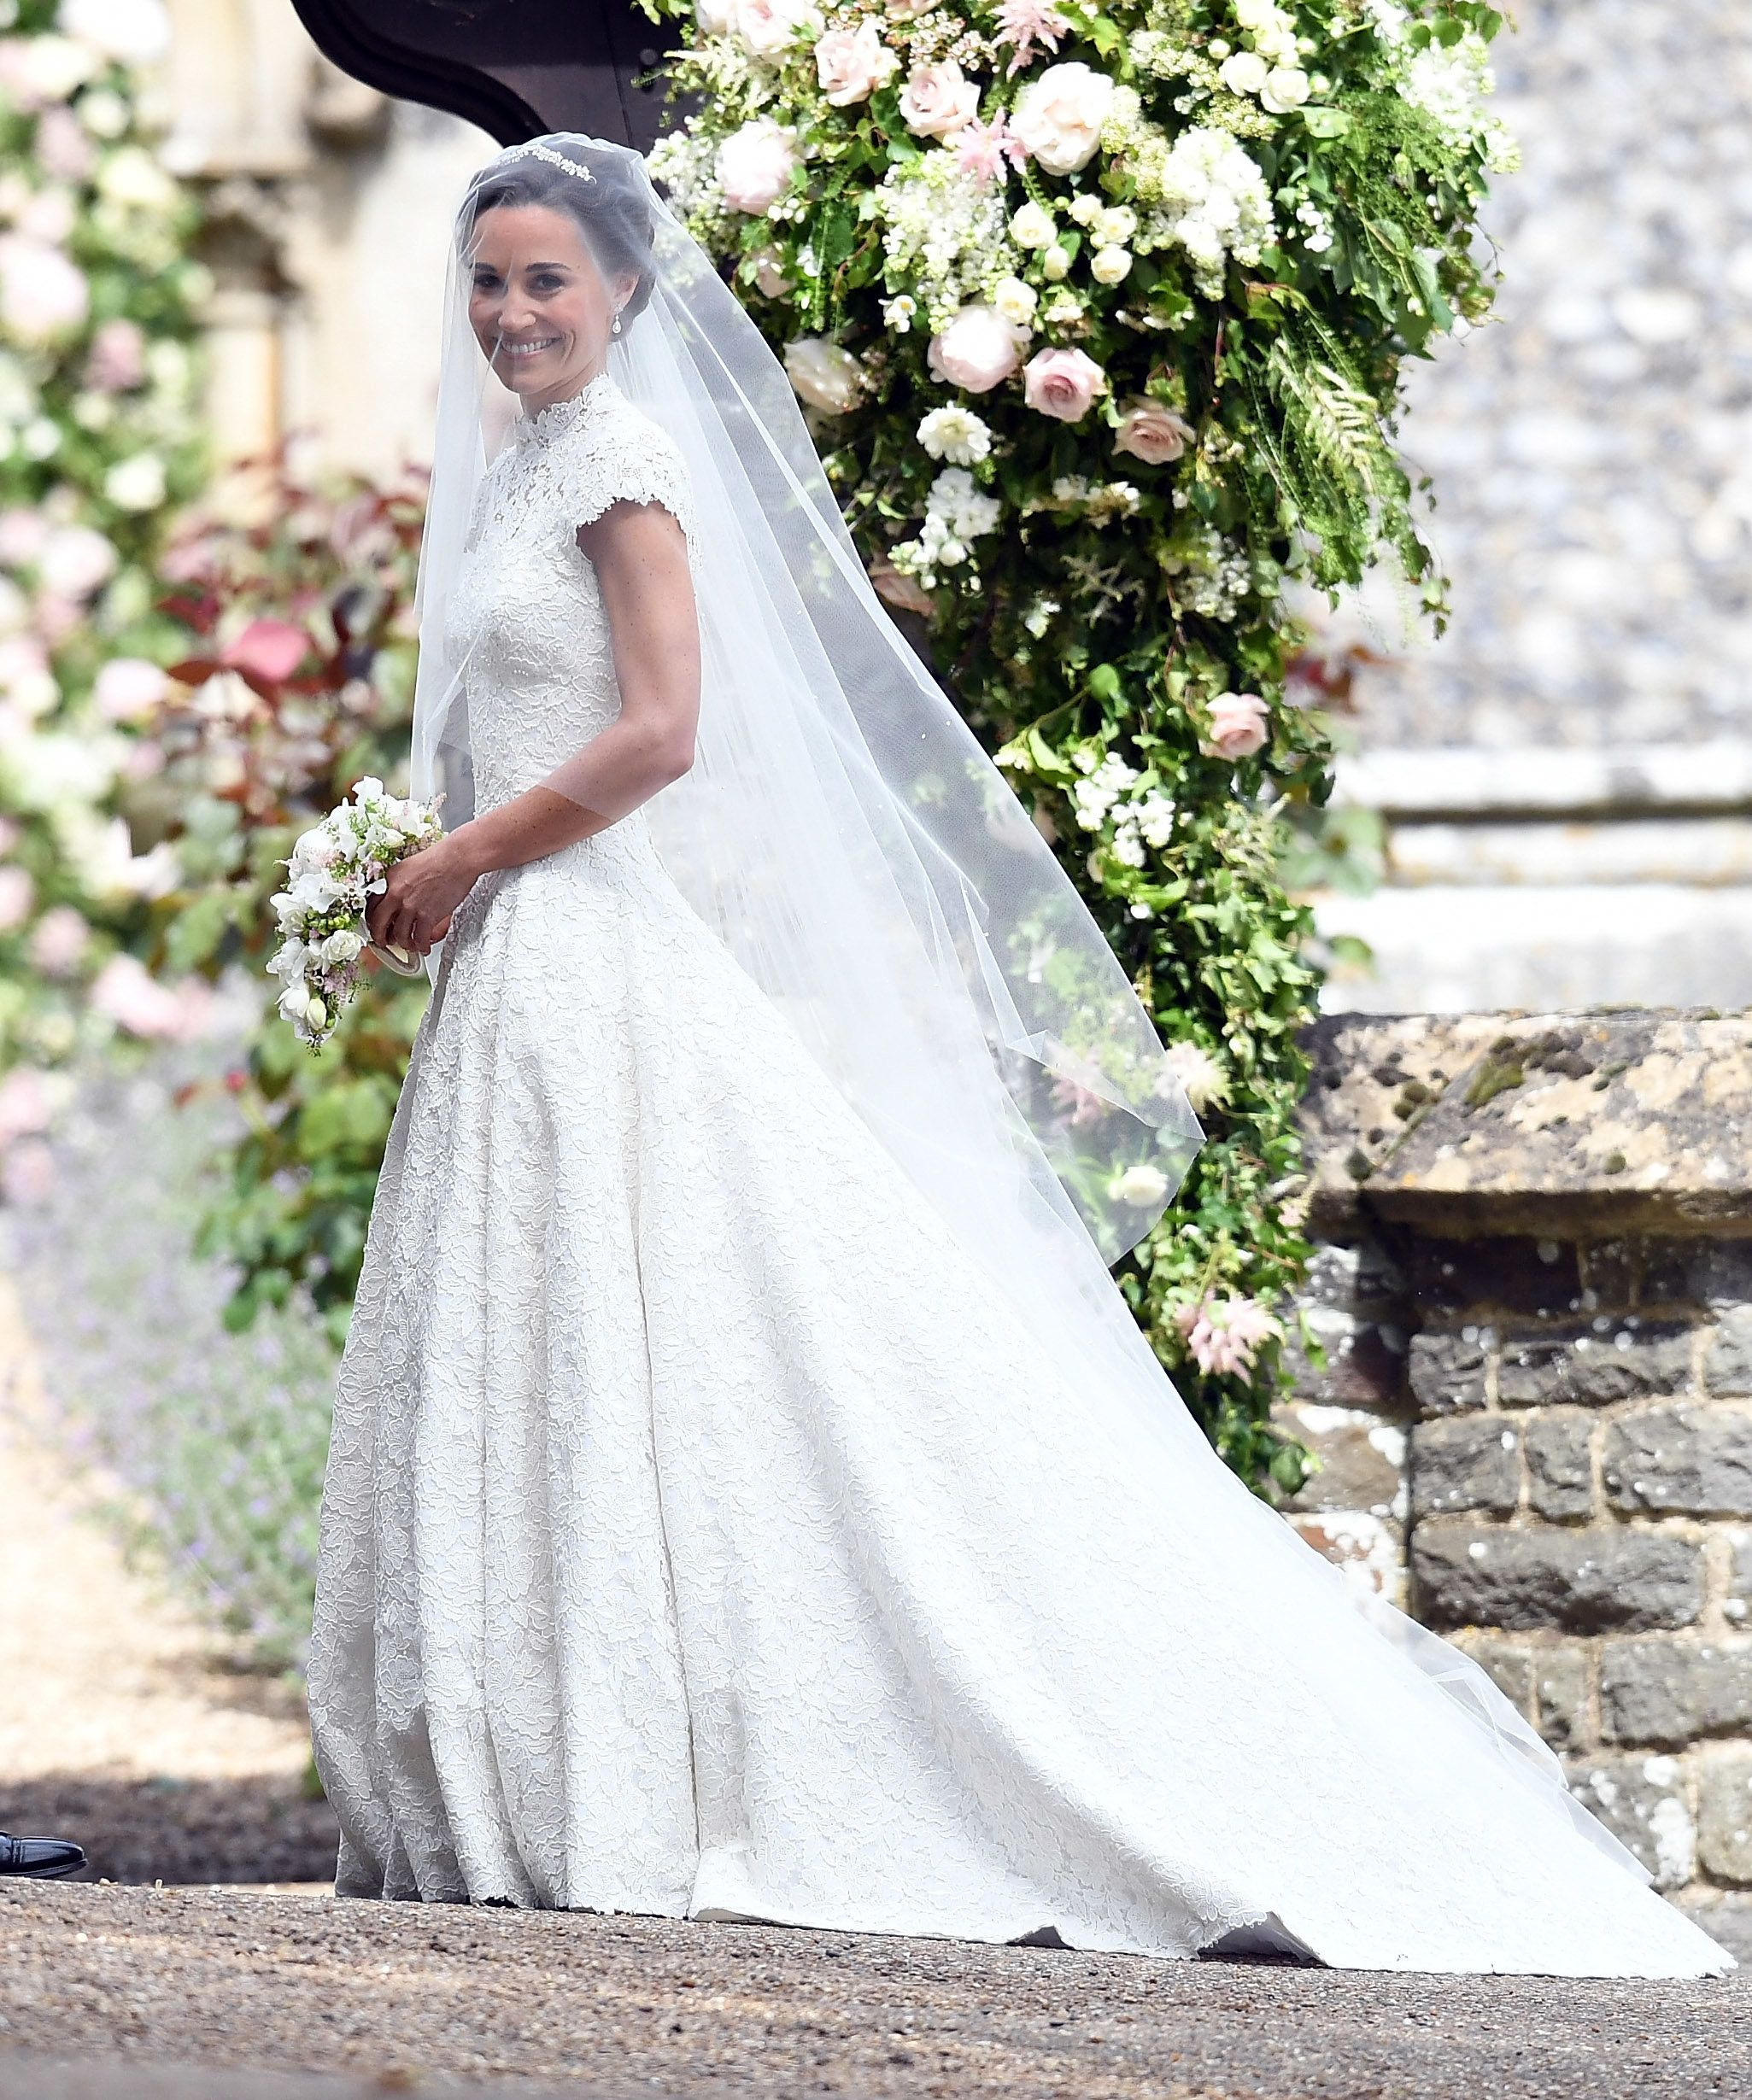 Pippa Middleton's Wedding: The Bride Looks Beautiful In A Giles Deacon